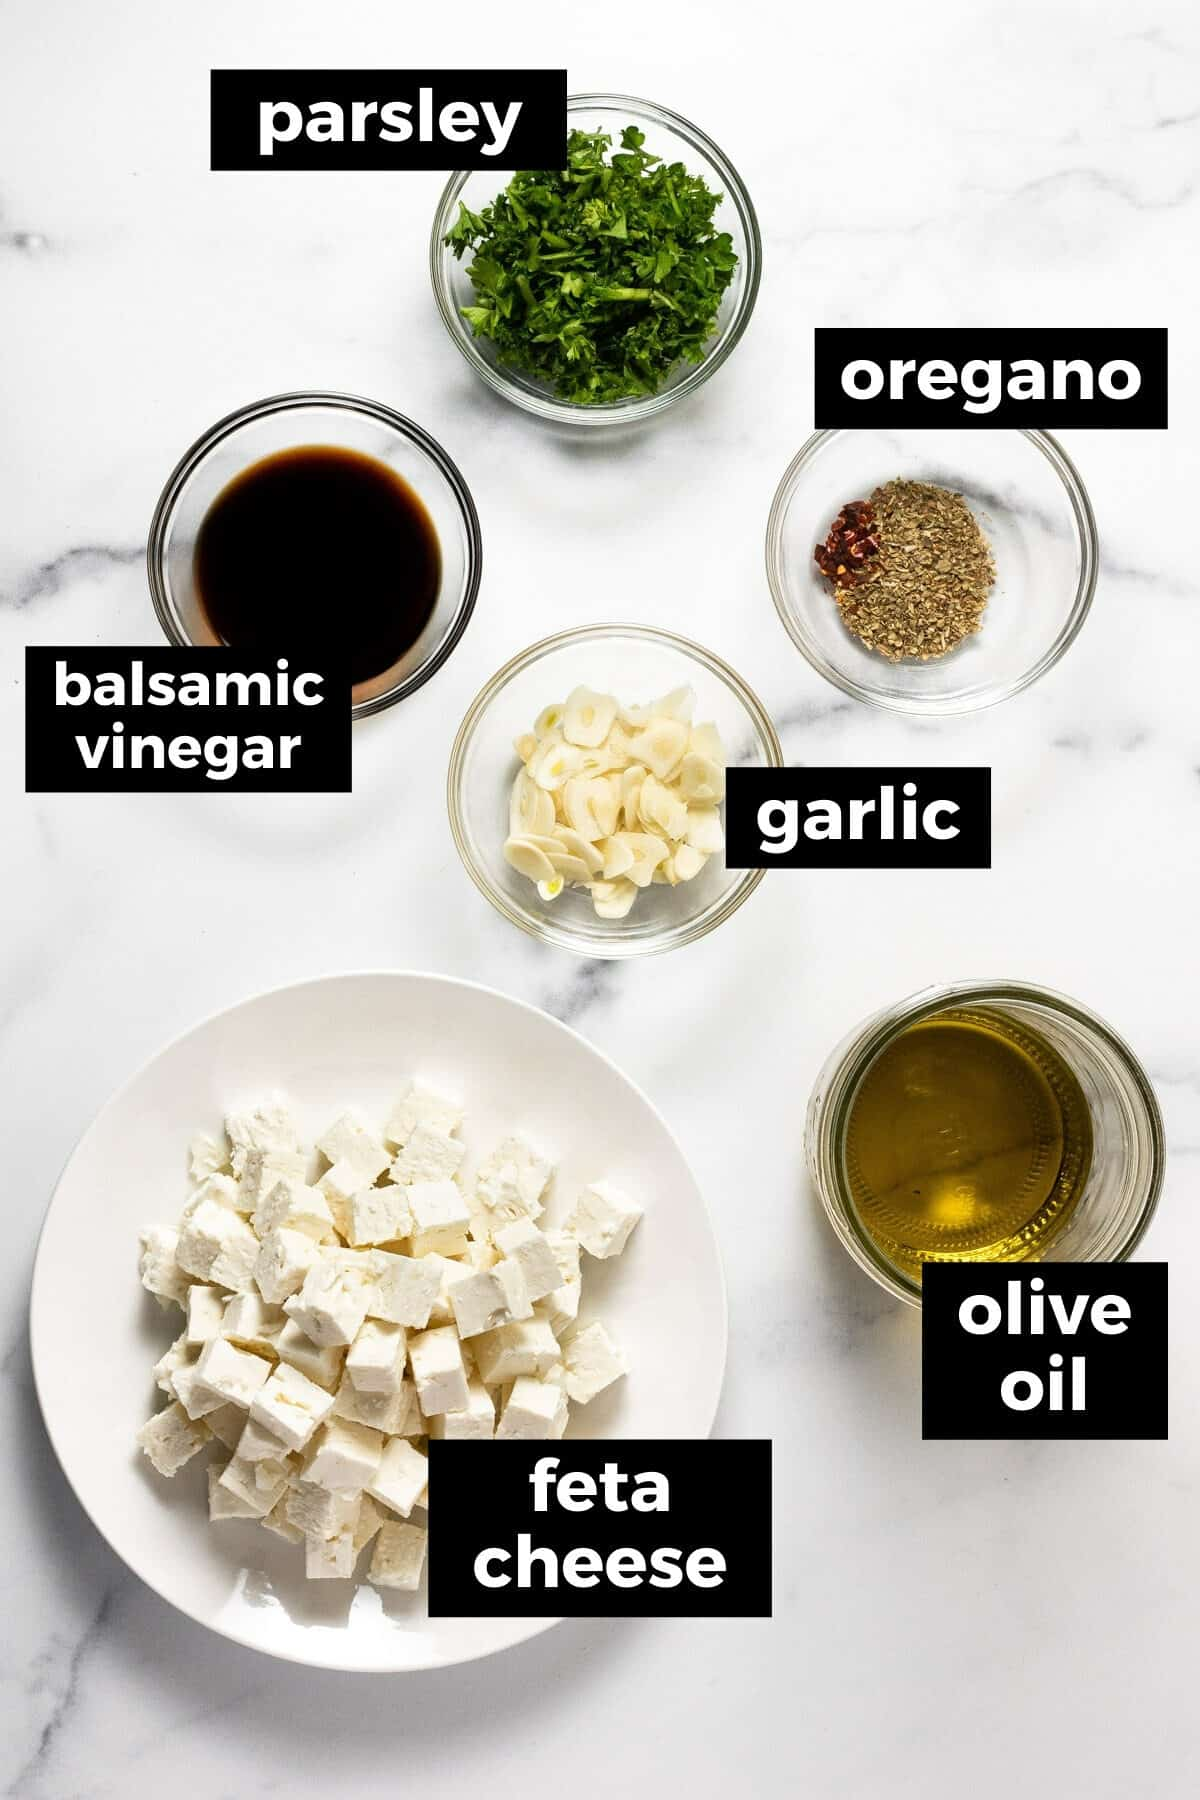 White marble countertop filled with ingredients to make marinated feta